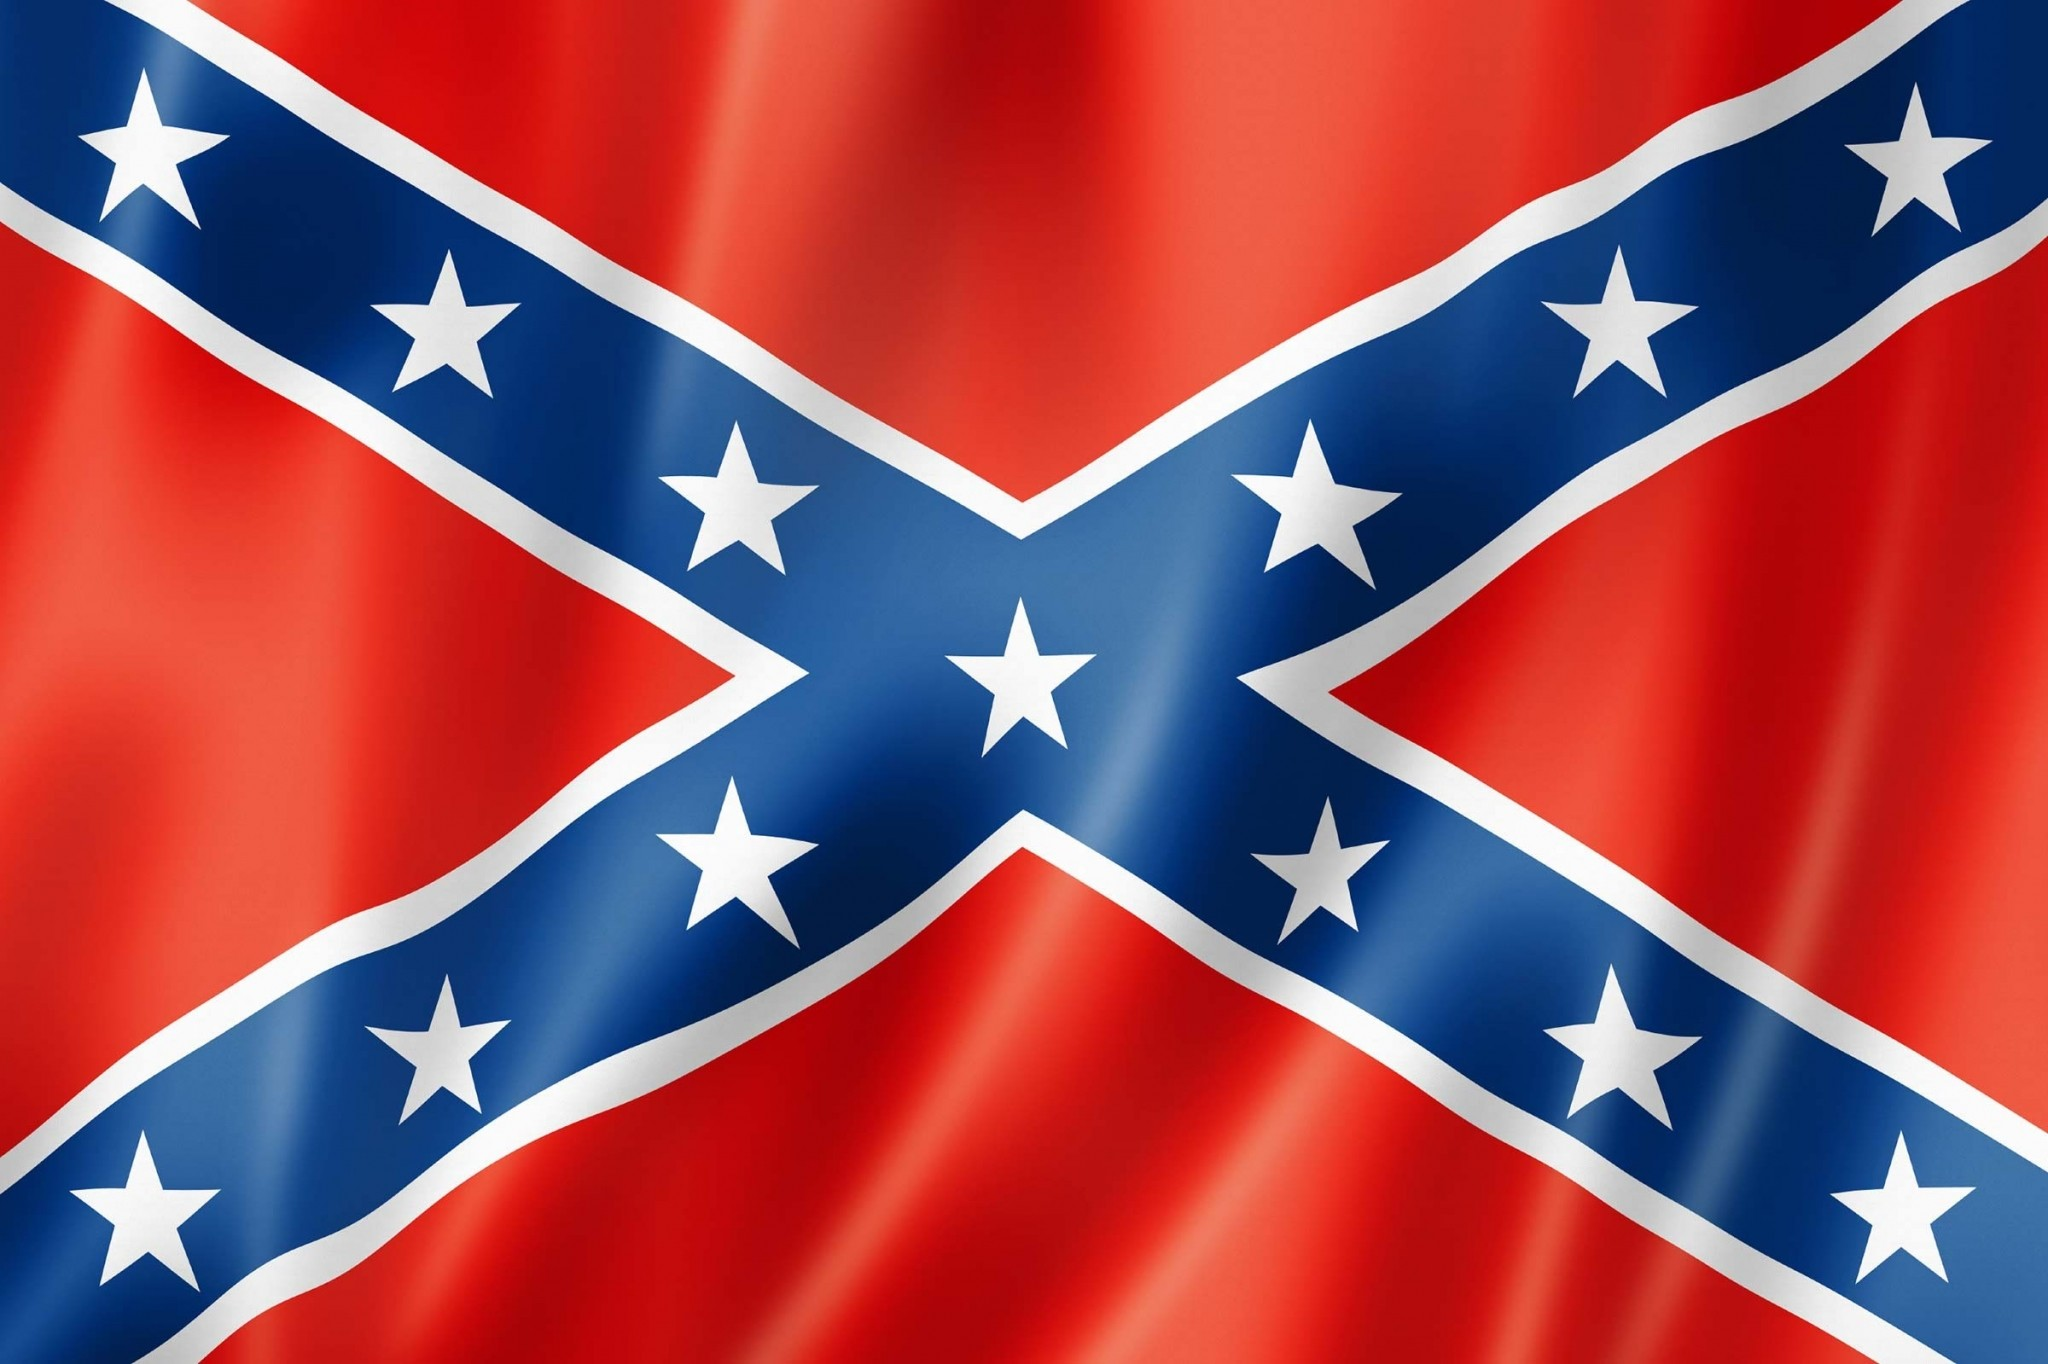 2048x1364 confederate flag hd widescreen wallpapers backgrounds | ololoshenka |  Pinterest | Hd widescreen wallpapers, Widescreen wallpaper and Wallpaper  backgrounds